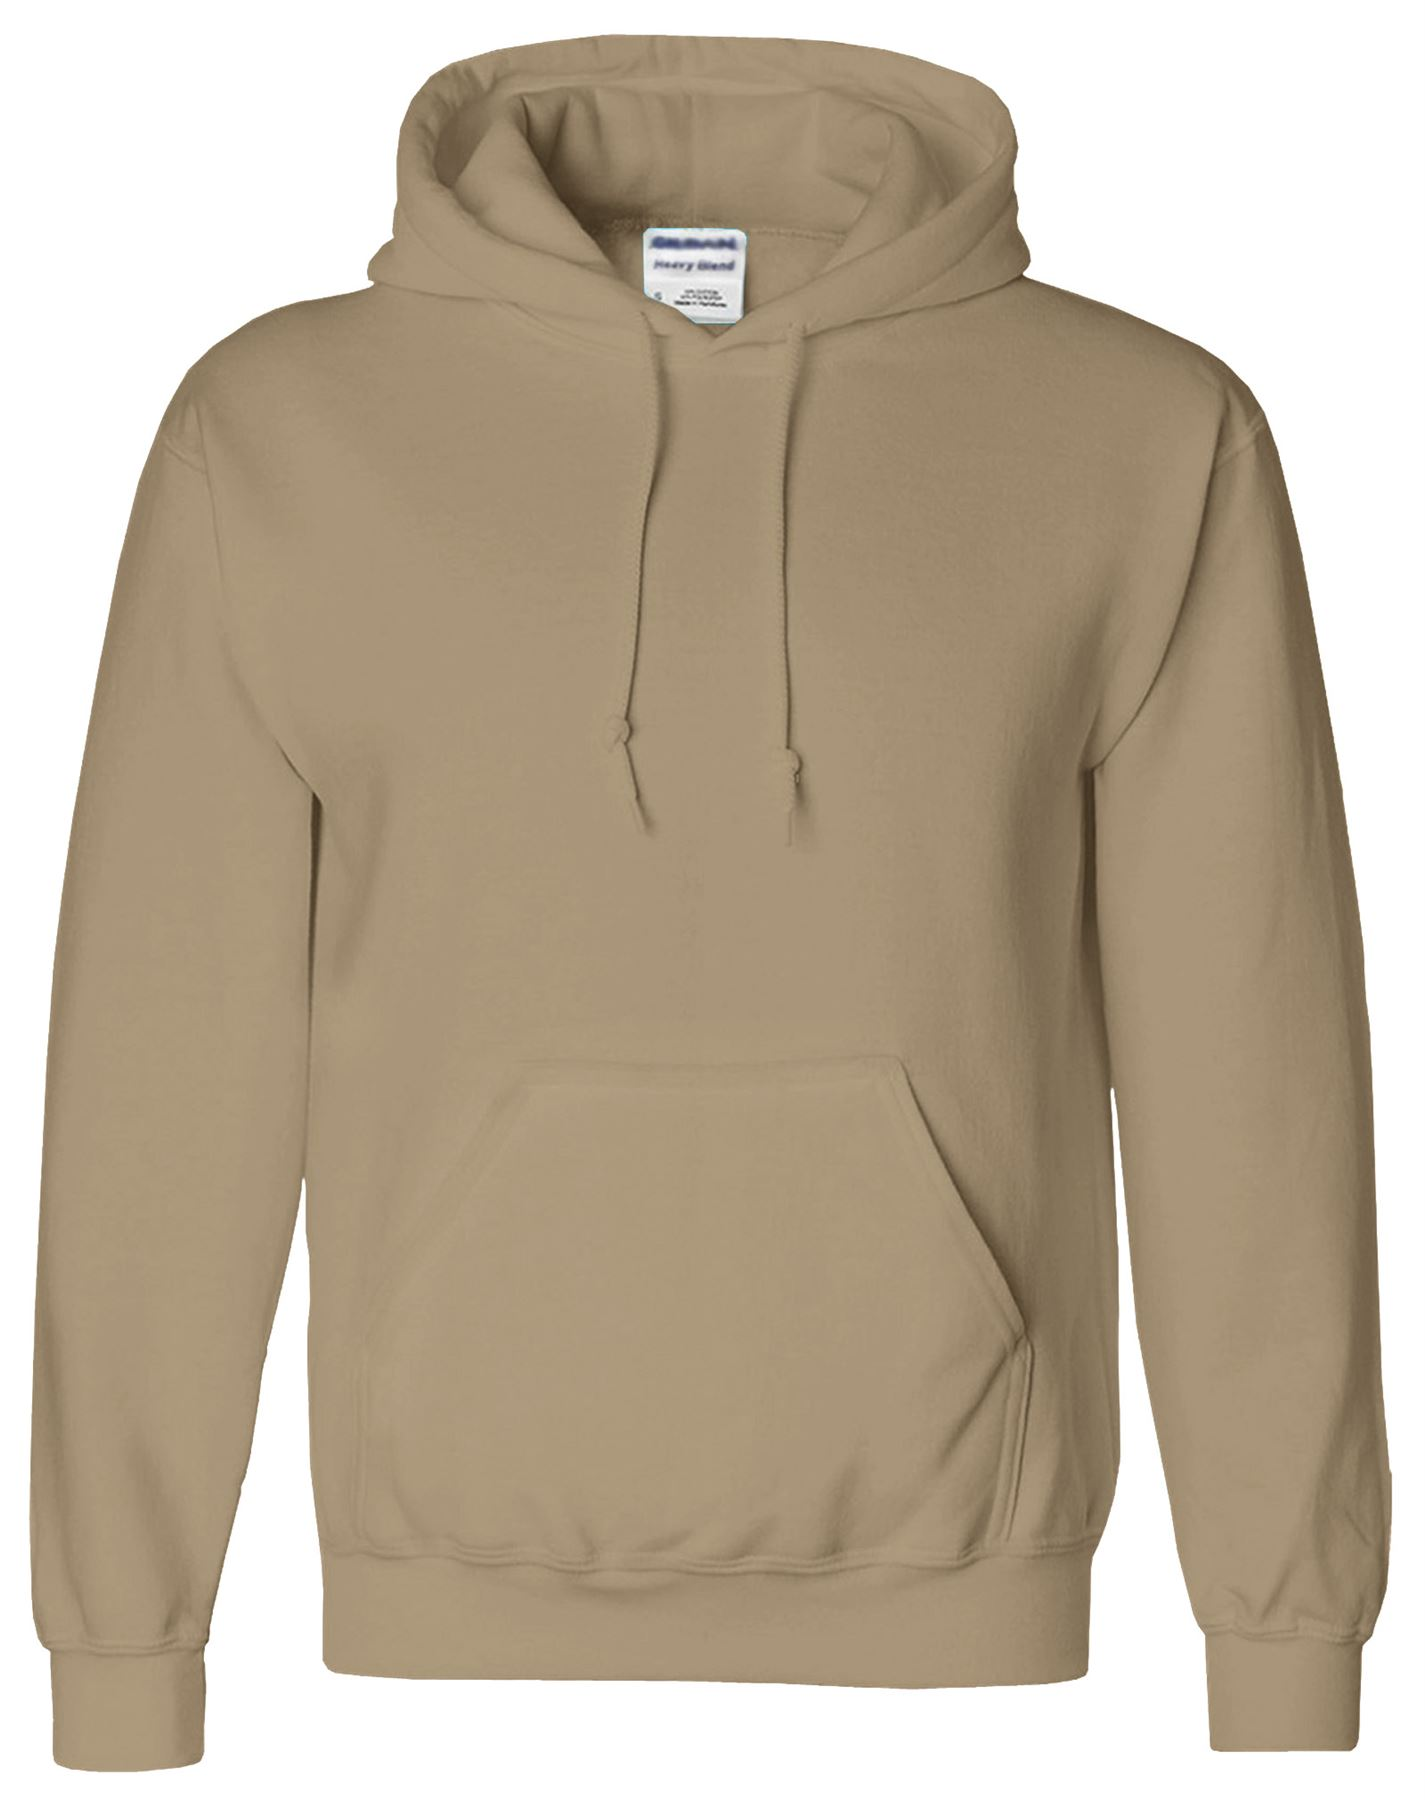 Find great deals on eBay for plain hoodies. Shop with confidence.